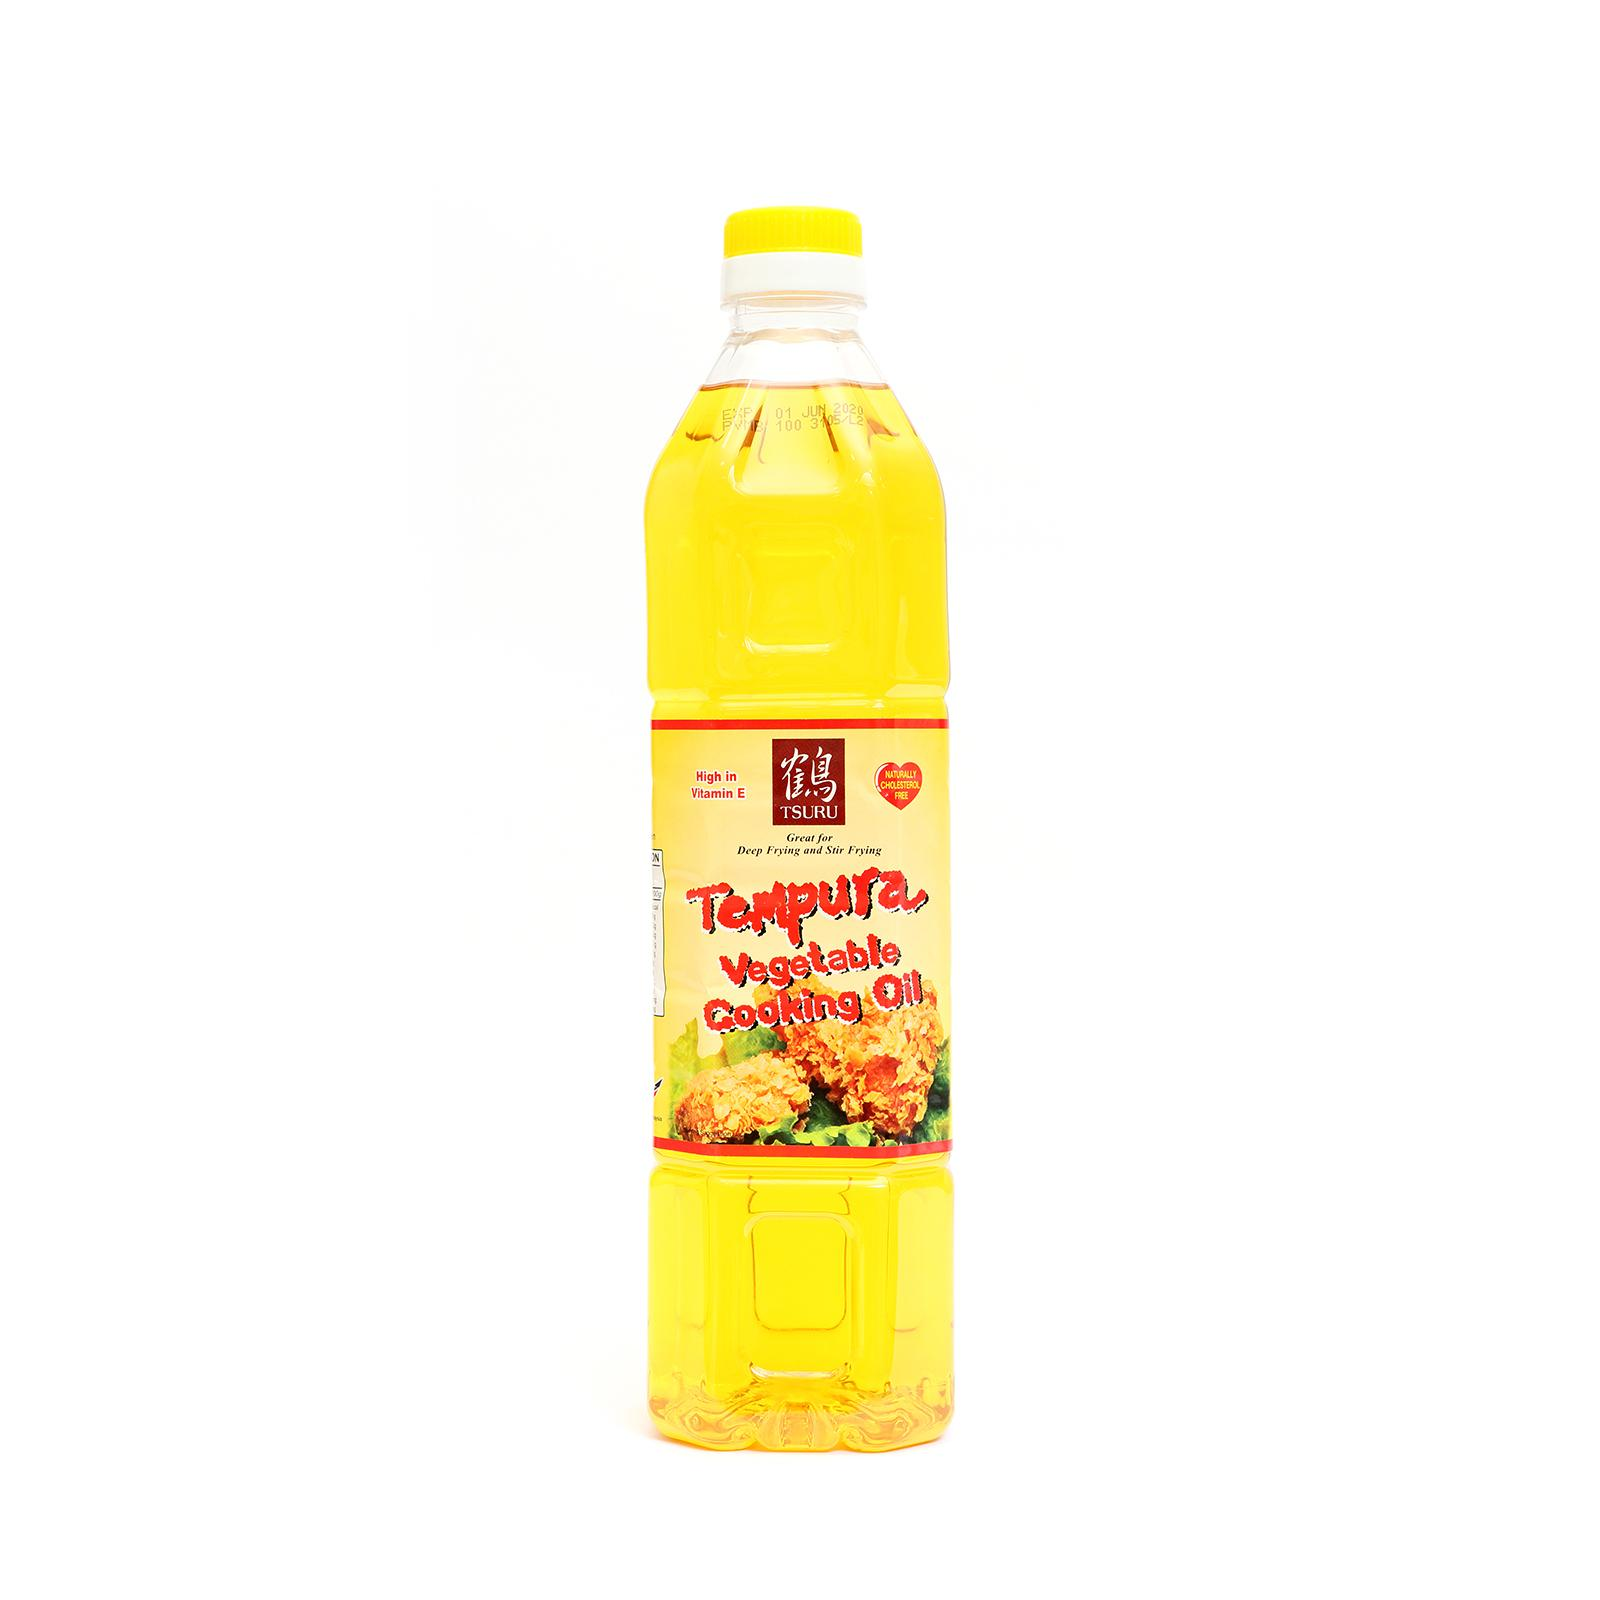 Tsuru Tempura Vegetable Cooking Oil 1l By The Rice Shop.